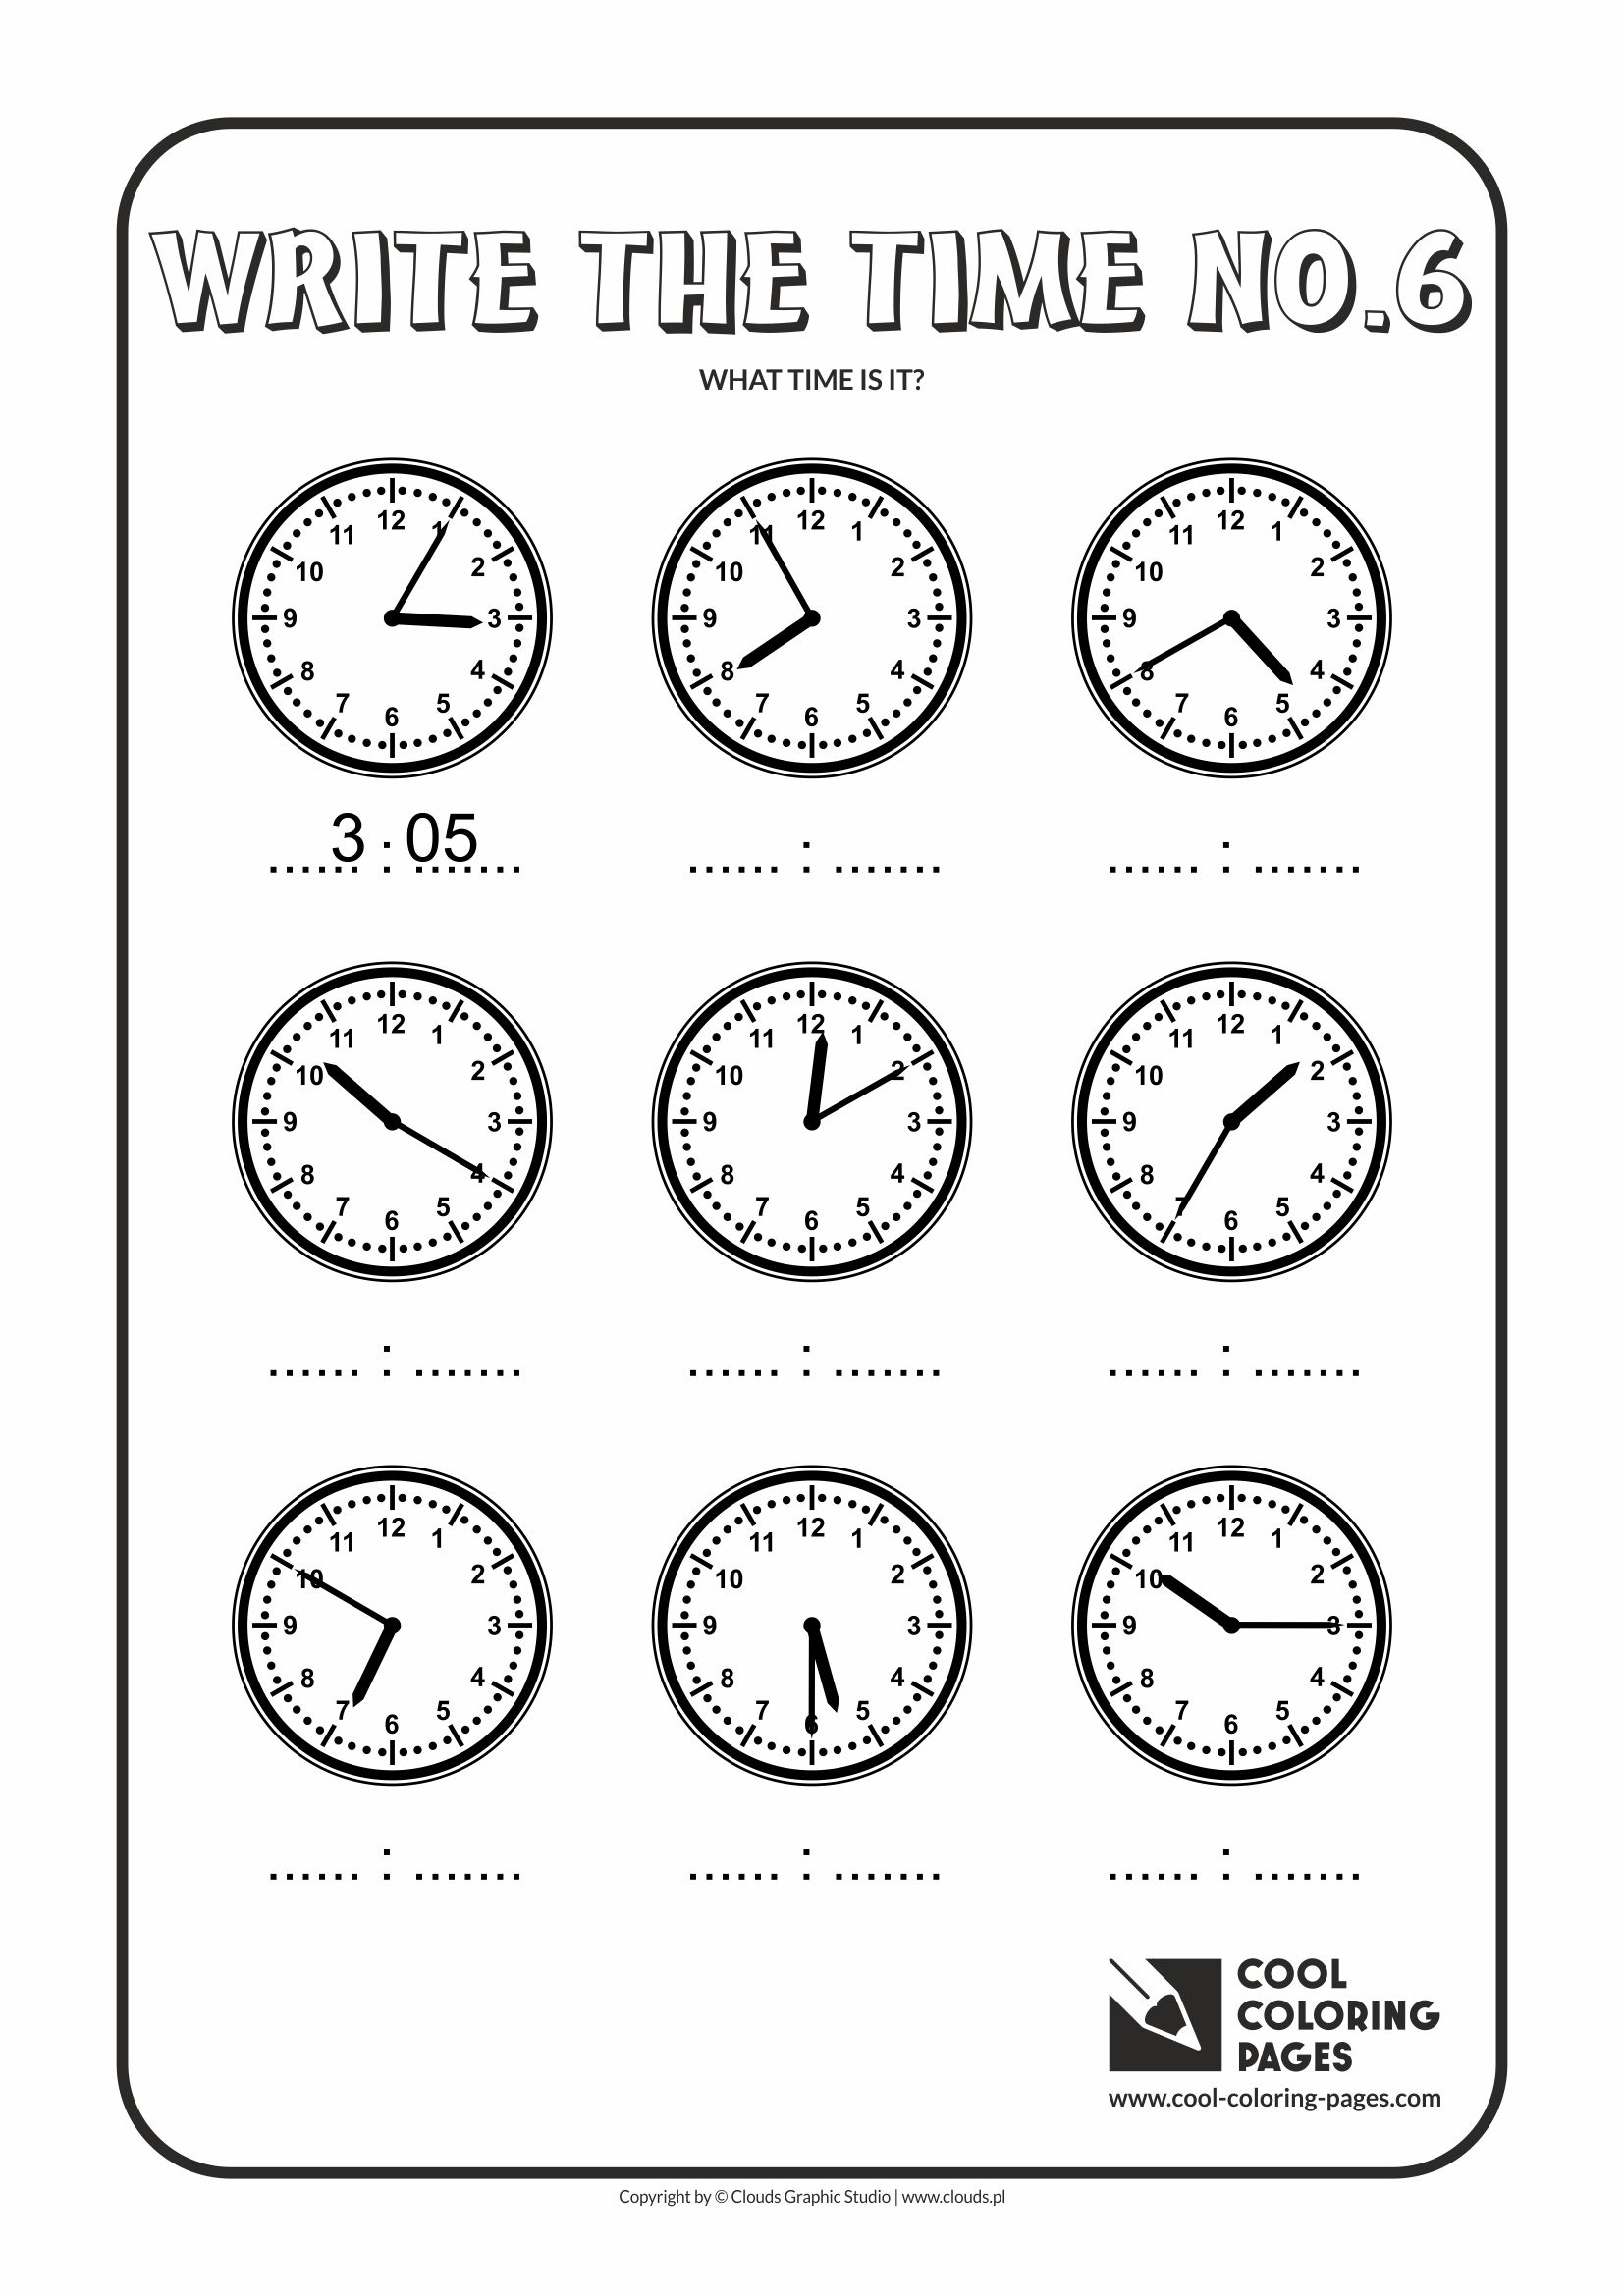 repeating timer no6